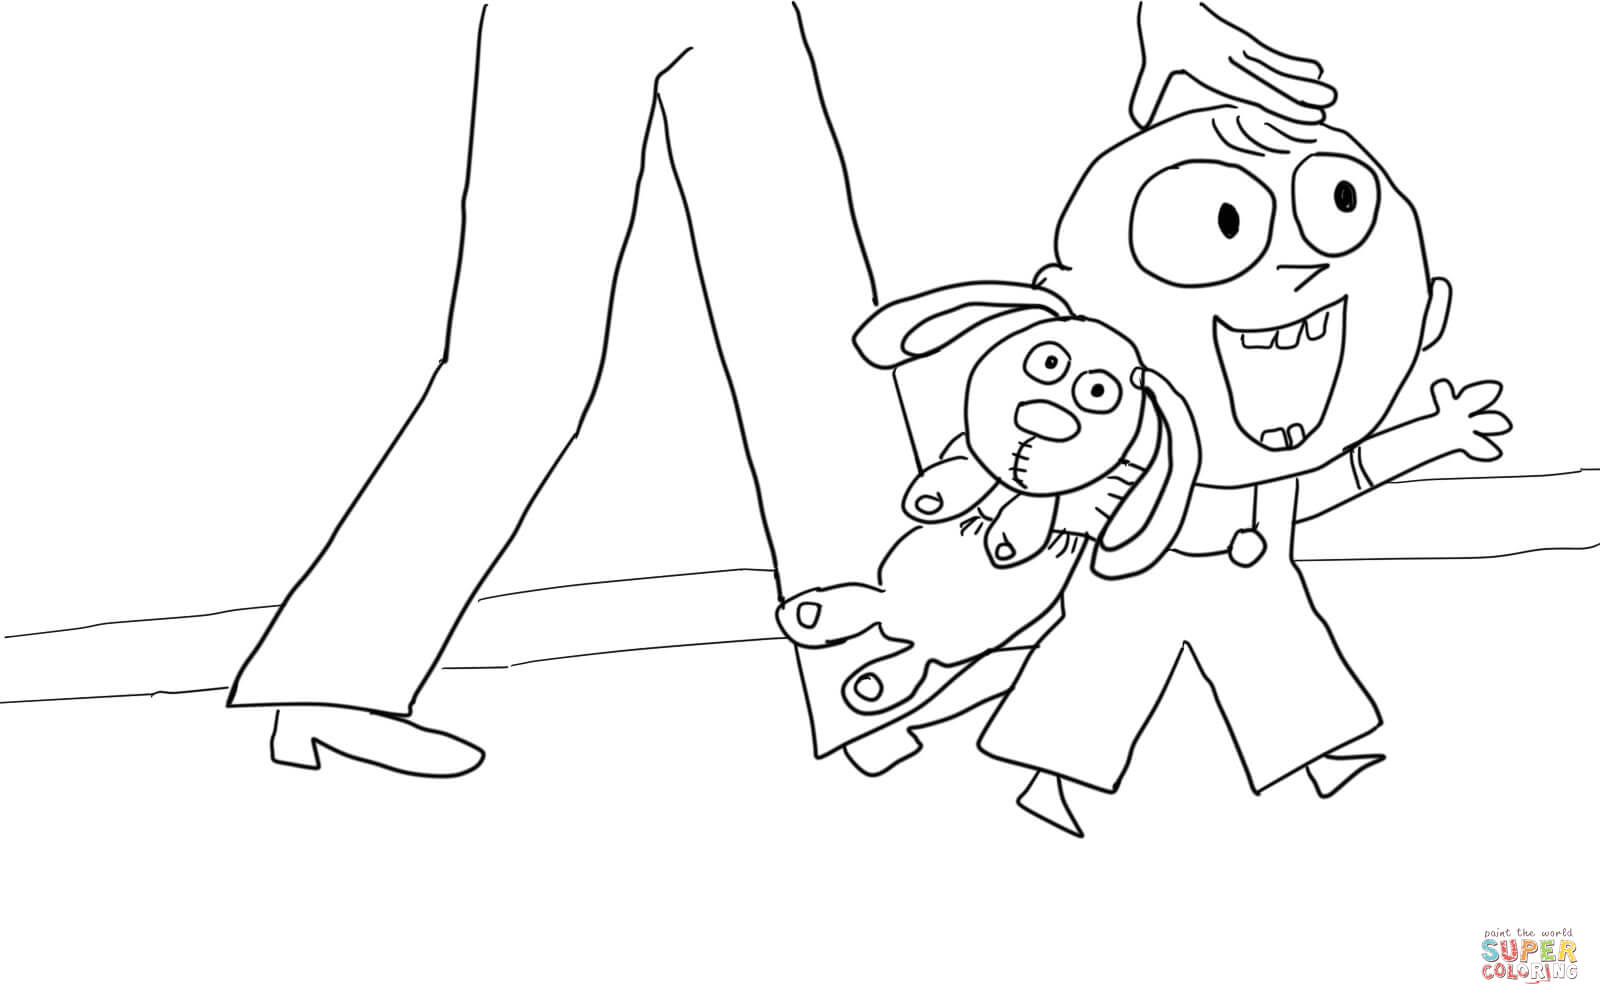 Trixie From Knuffle Bunny Coloring Page